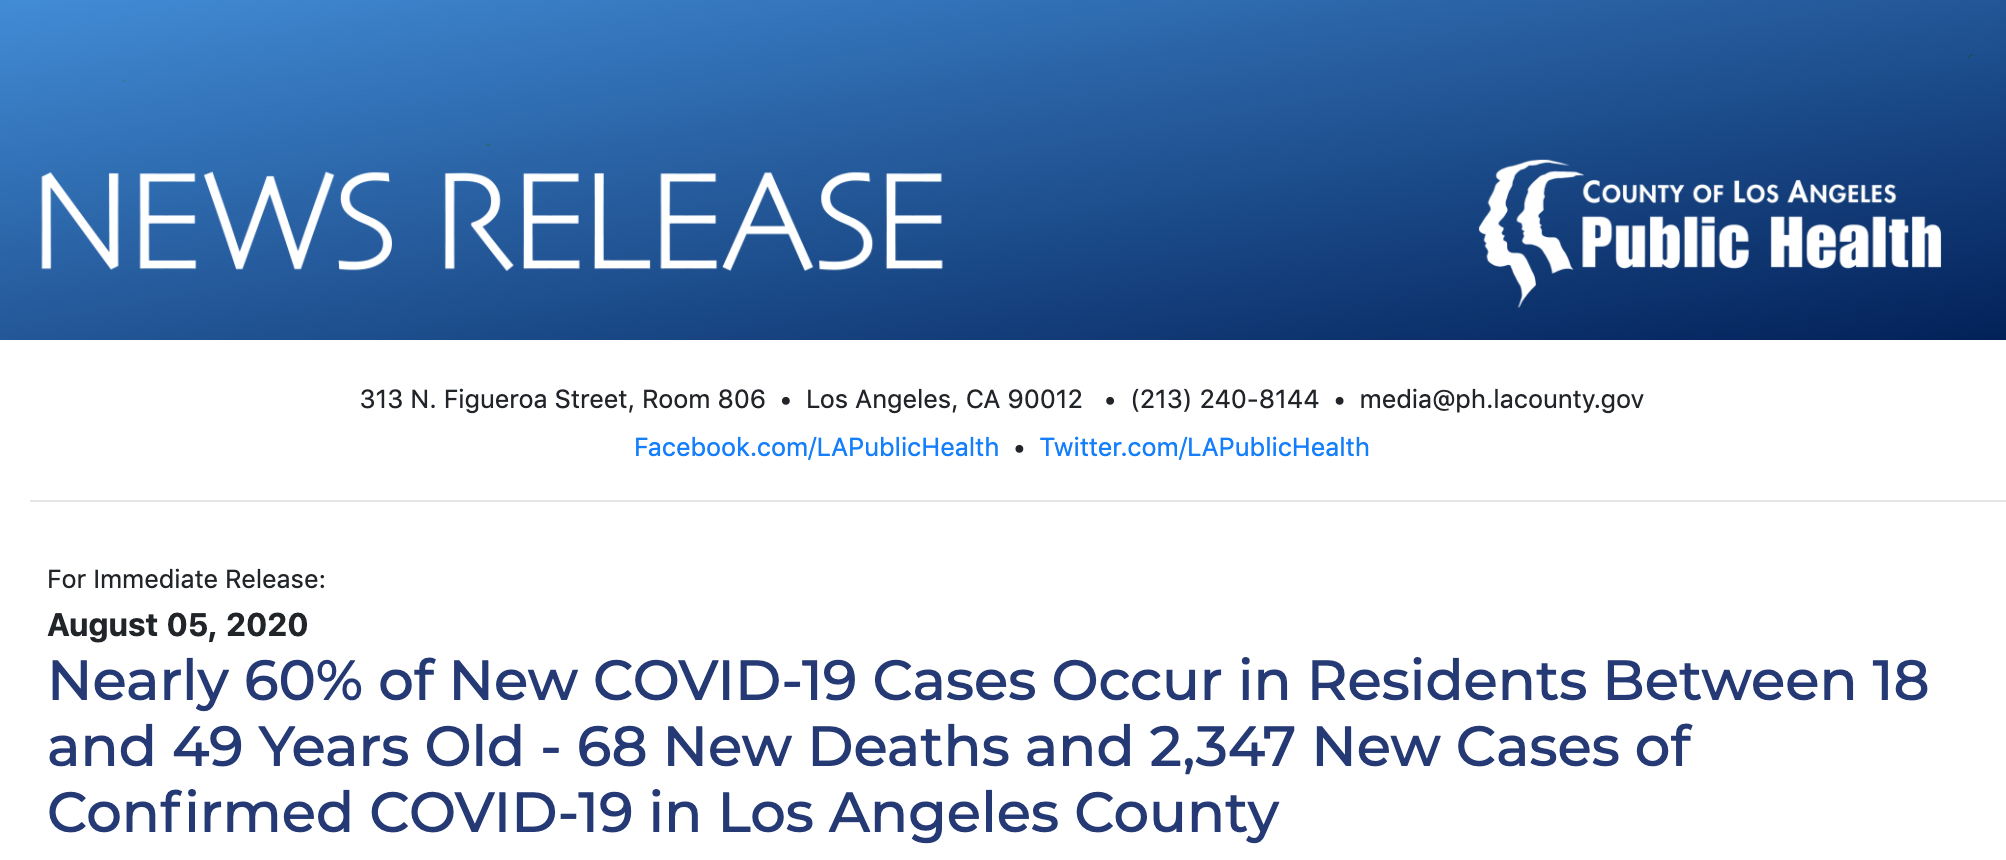 Nearly 60% of New COVID-19 Cases Occur in Residents Between 18 and 49 Years Old